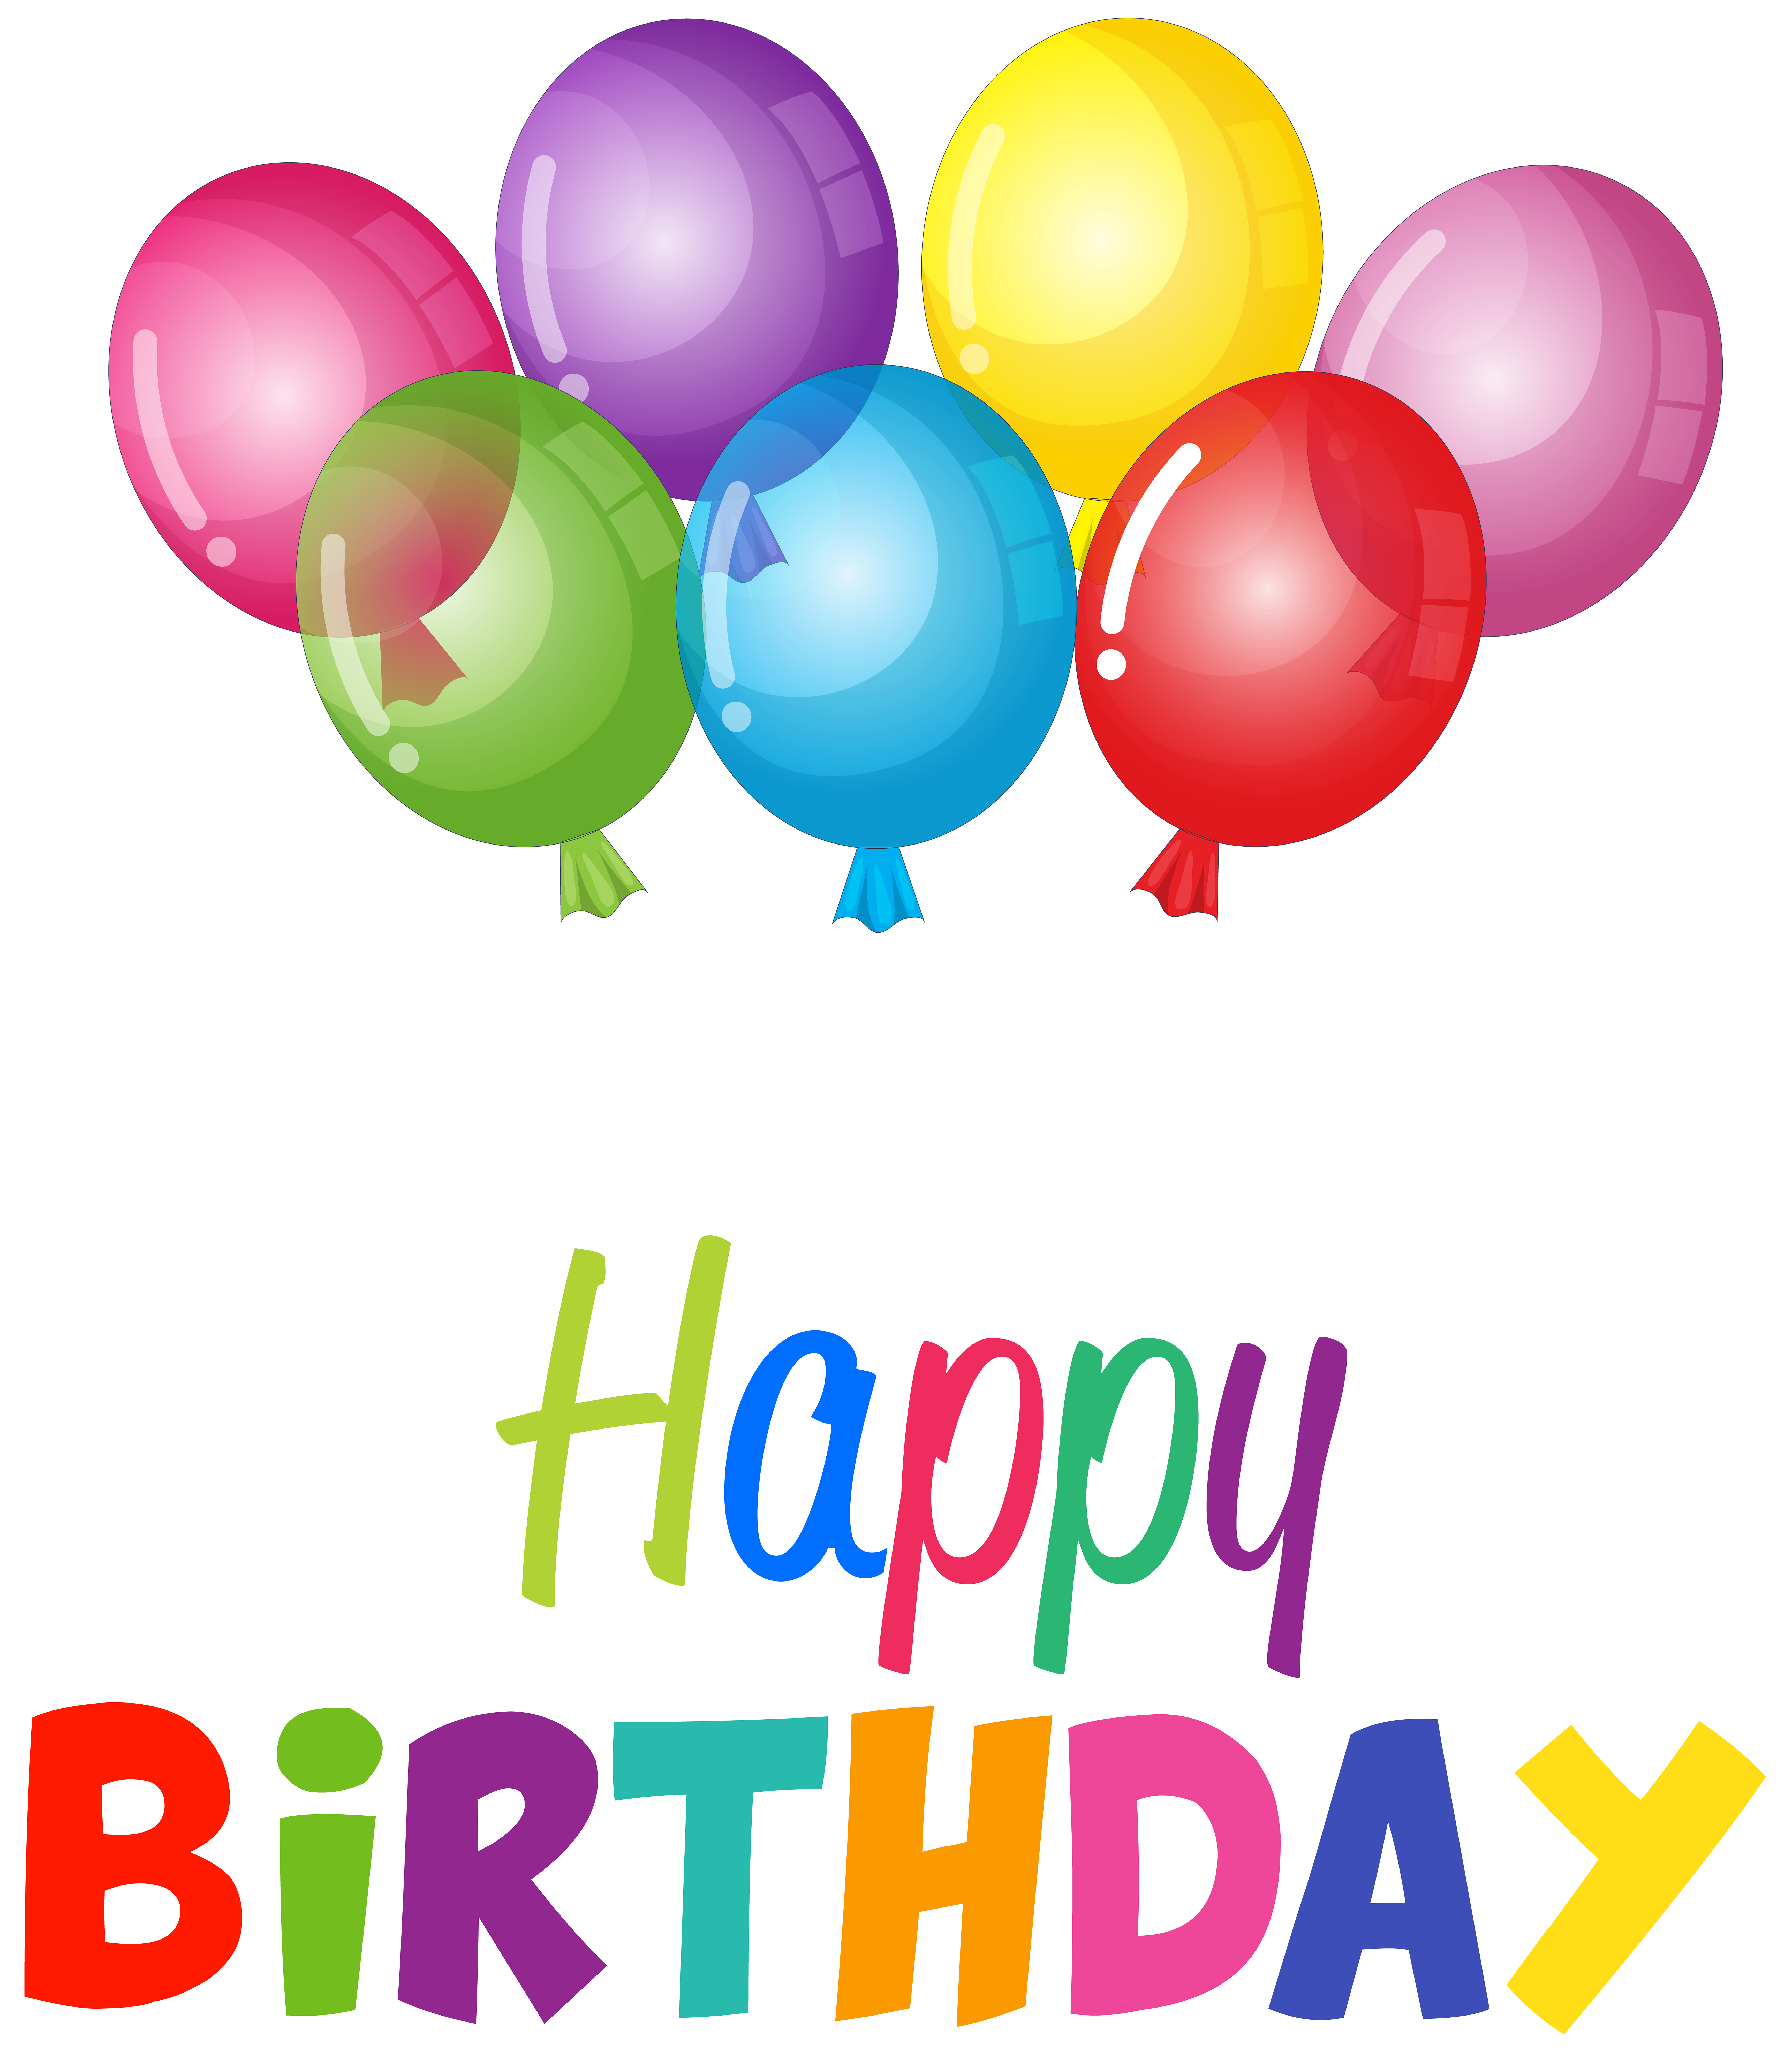 Balloons clipart happy birthday. Clip art png image